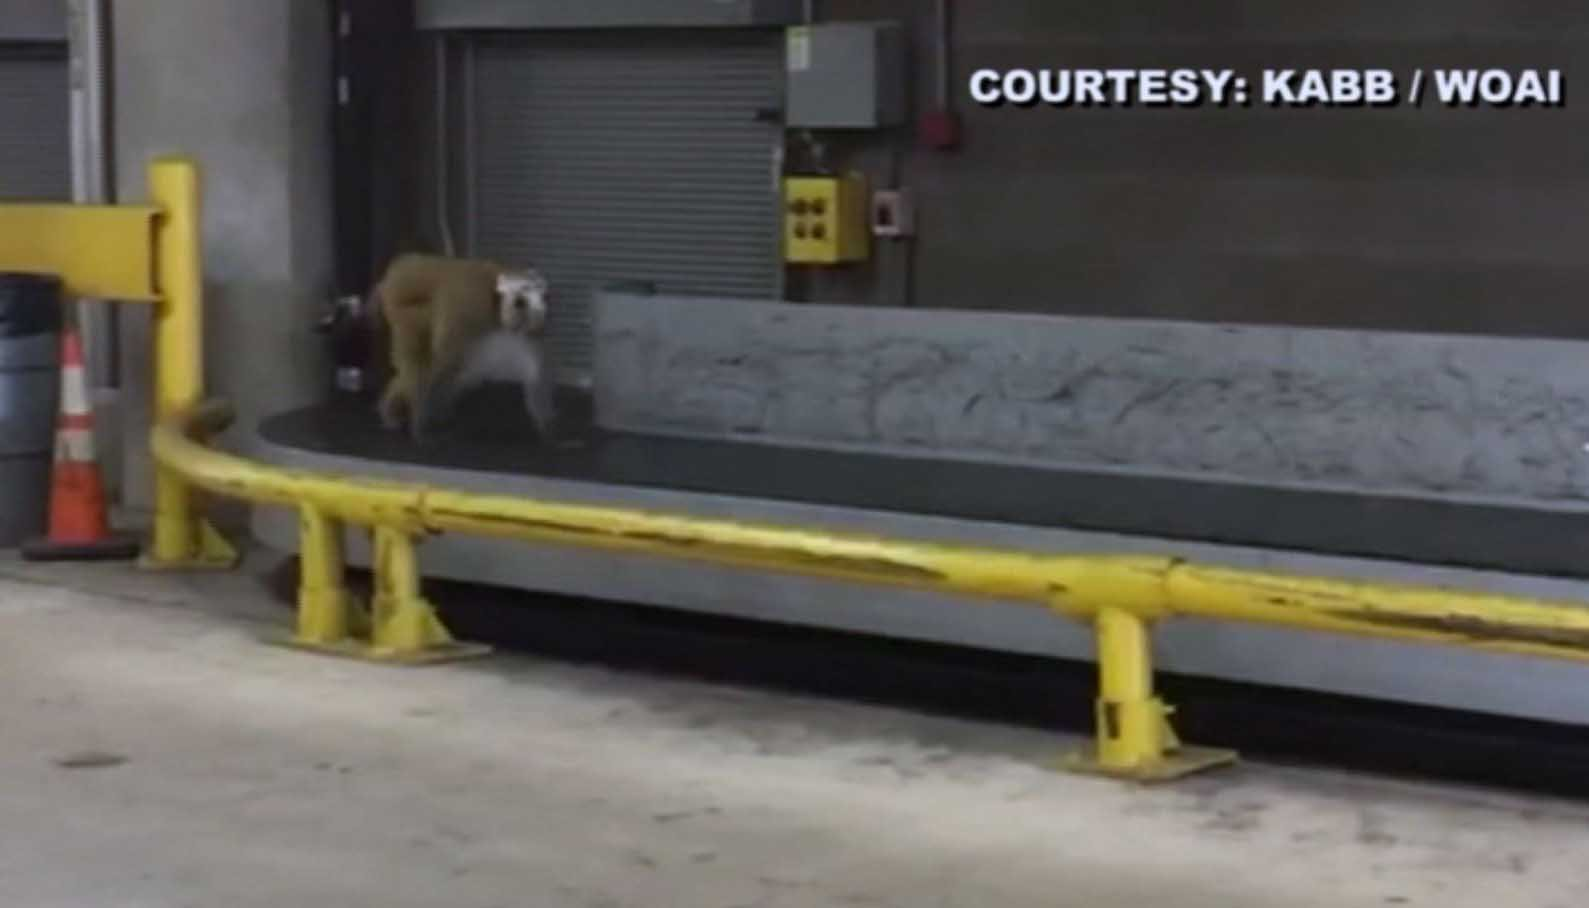 A rhesus macaque named Dawkins wandered the San Antonio International Airport after escaping his crate. (Source: KABB/WOAI/CNN)